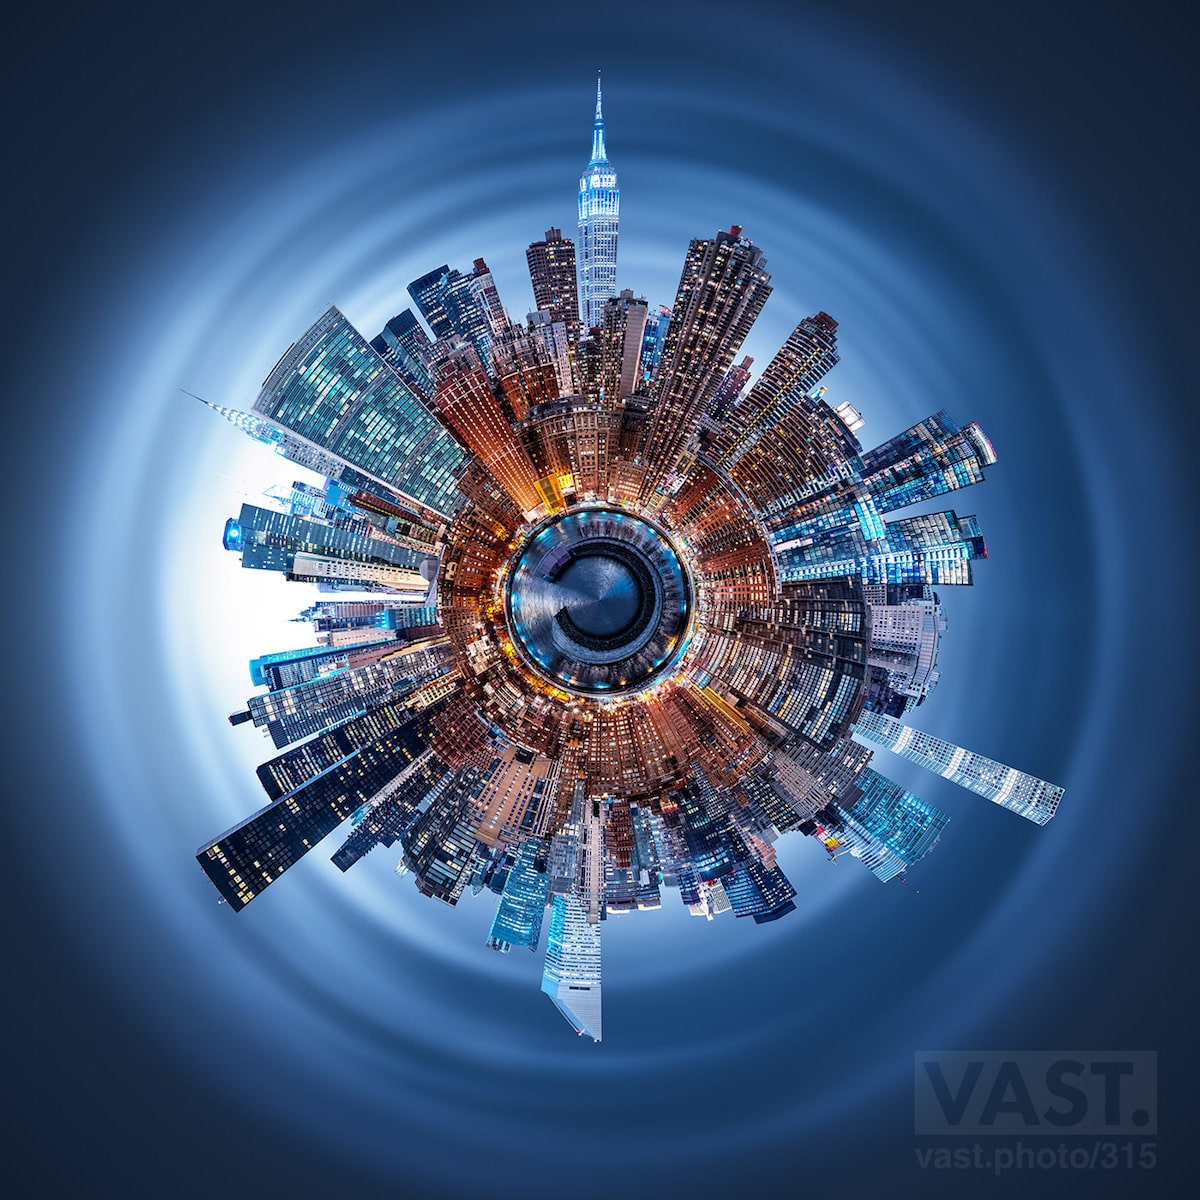 It Took 160 Hours To Create This Stunning 600 Megapixel View Of The Computer Hard Drive Circuit Board Blue Ipad Mini Covers Zazzle Manhattan Skyline My Modern Met Bloglovin